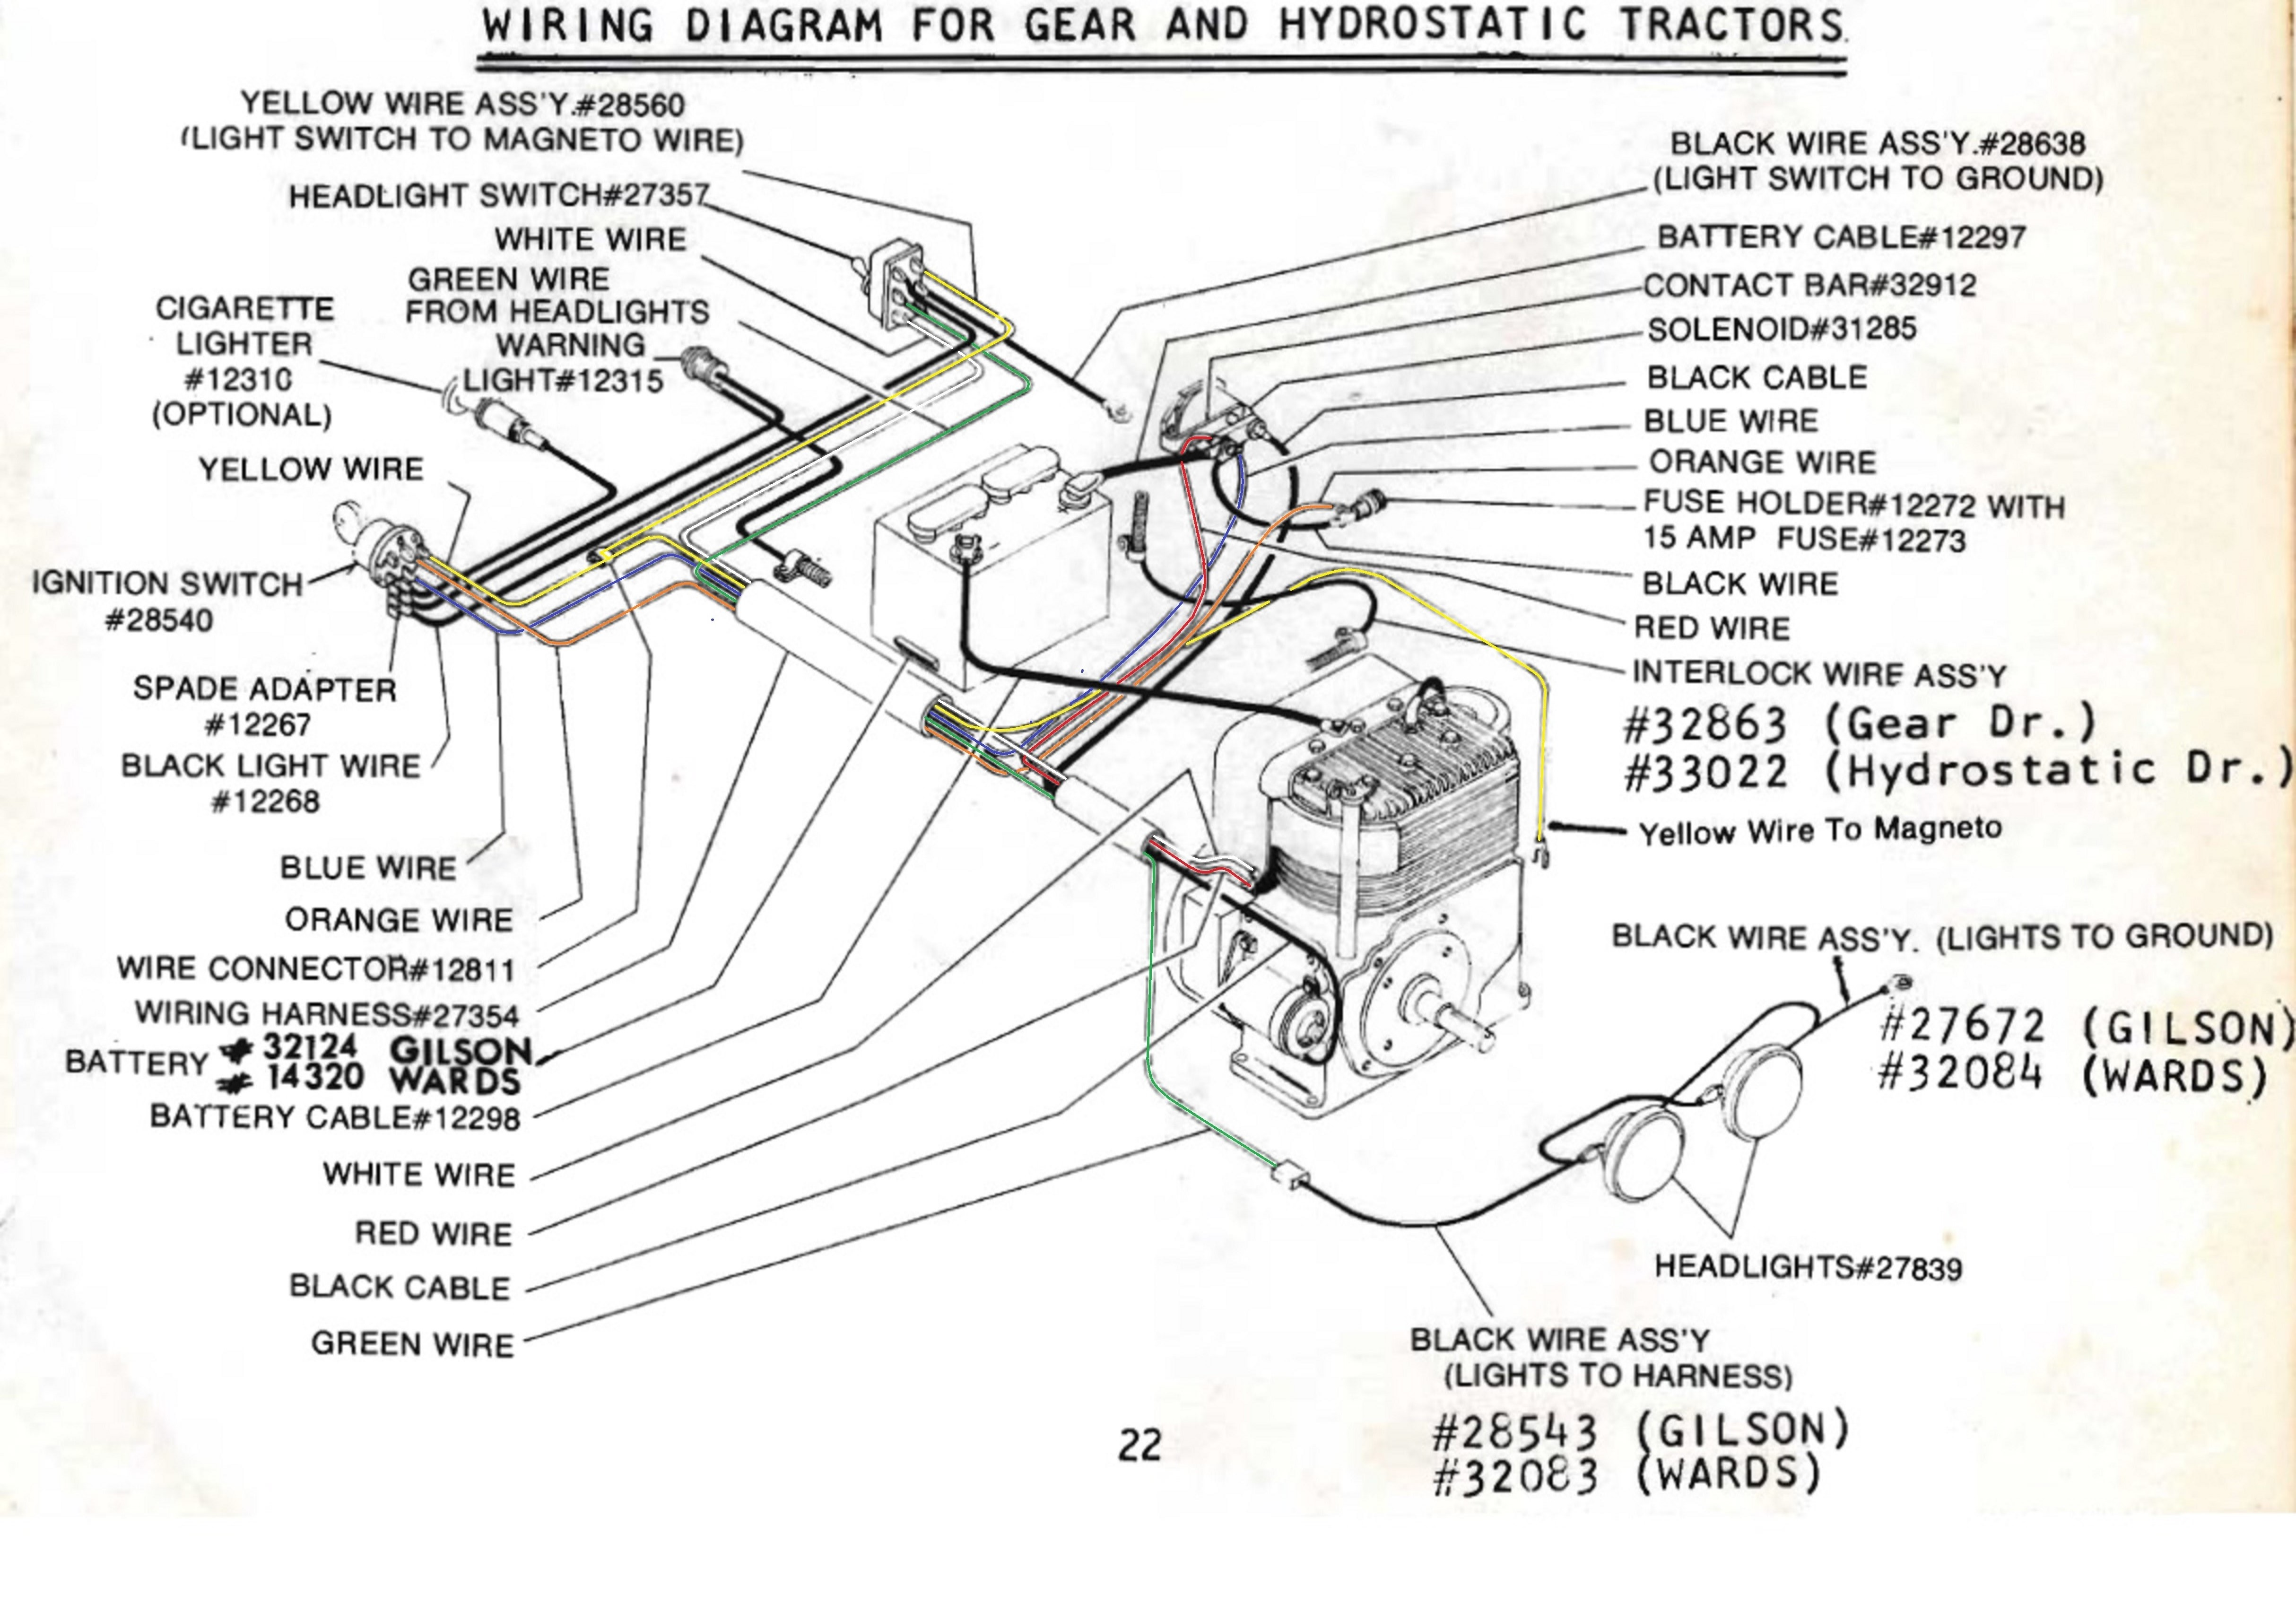 click image for larger version name: gilson wiring diagram jpg views: 50  size